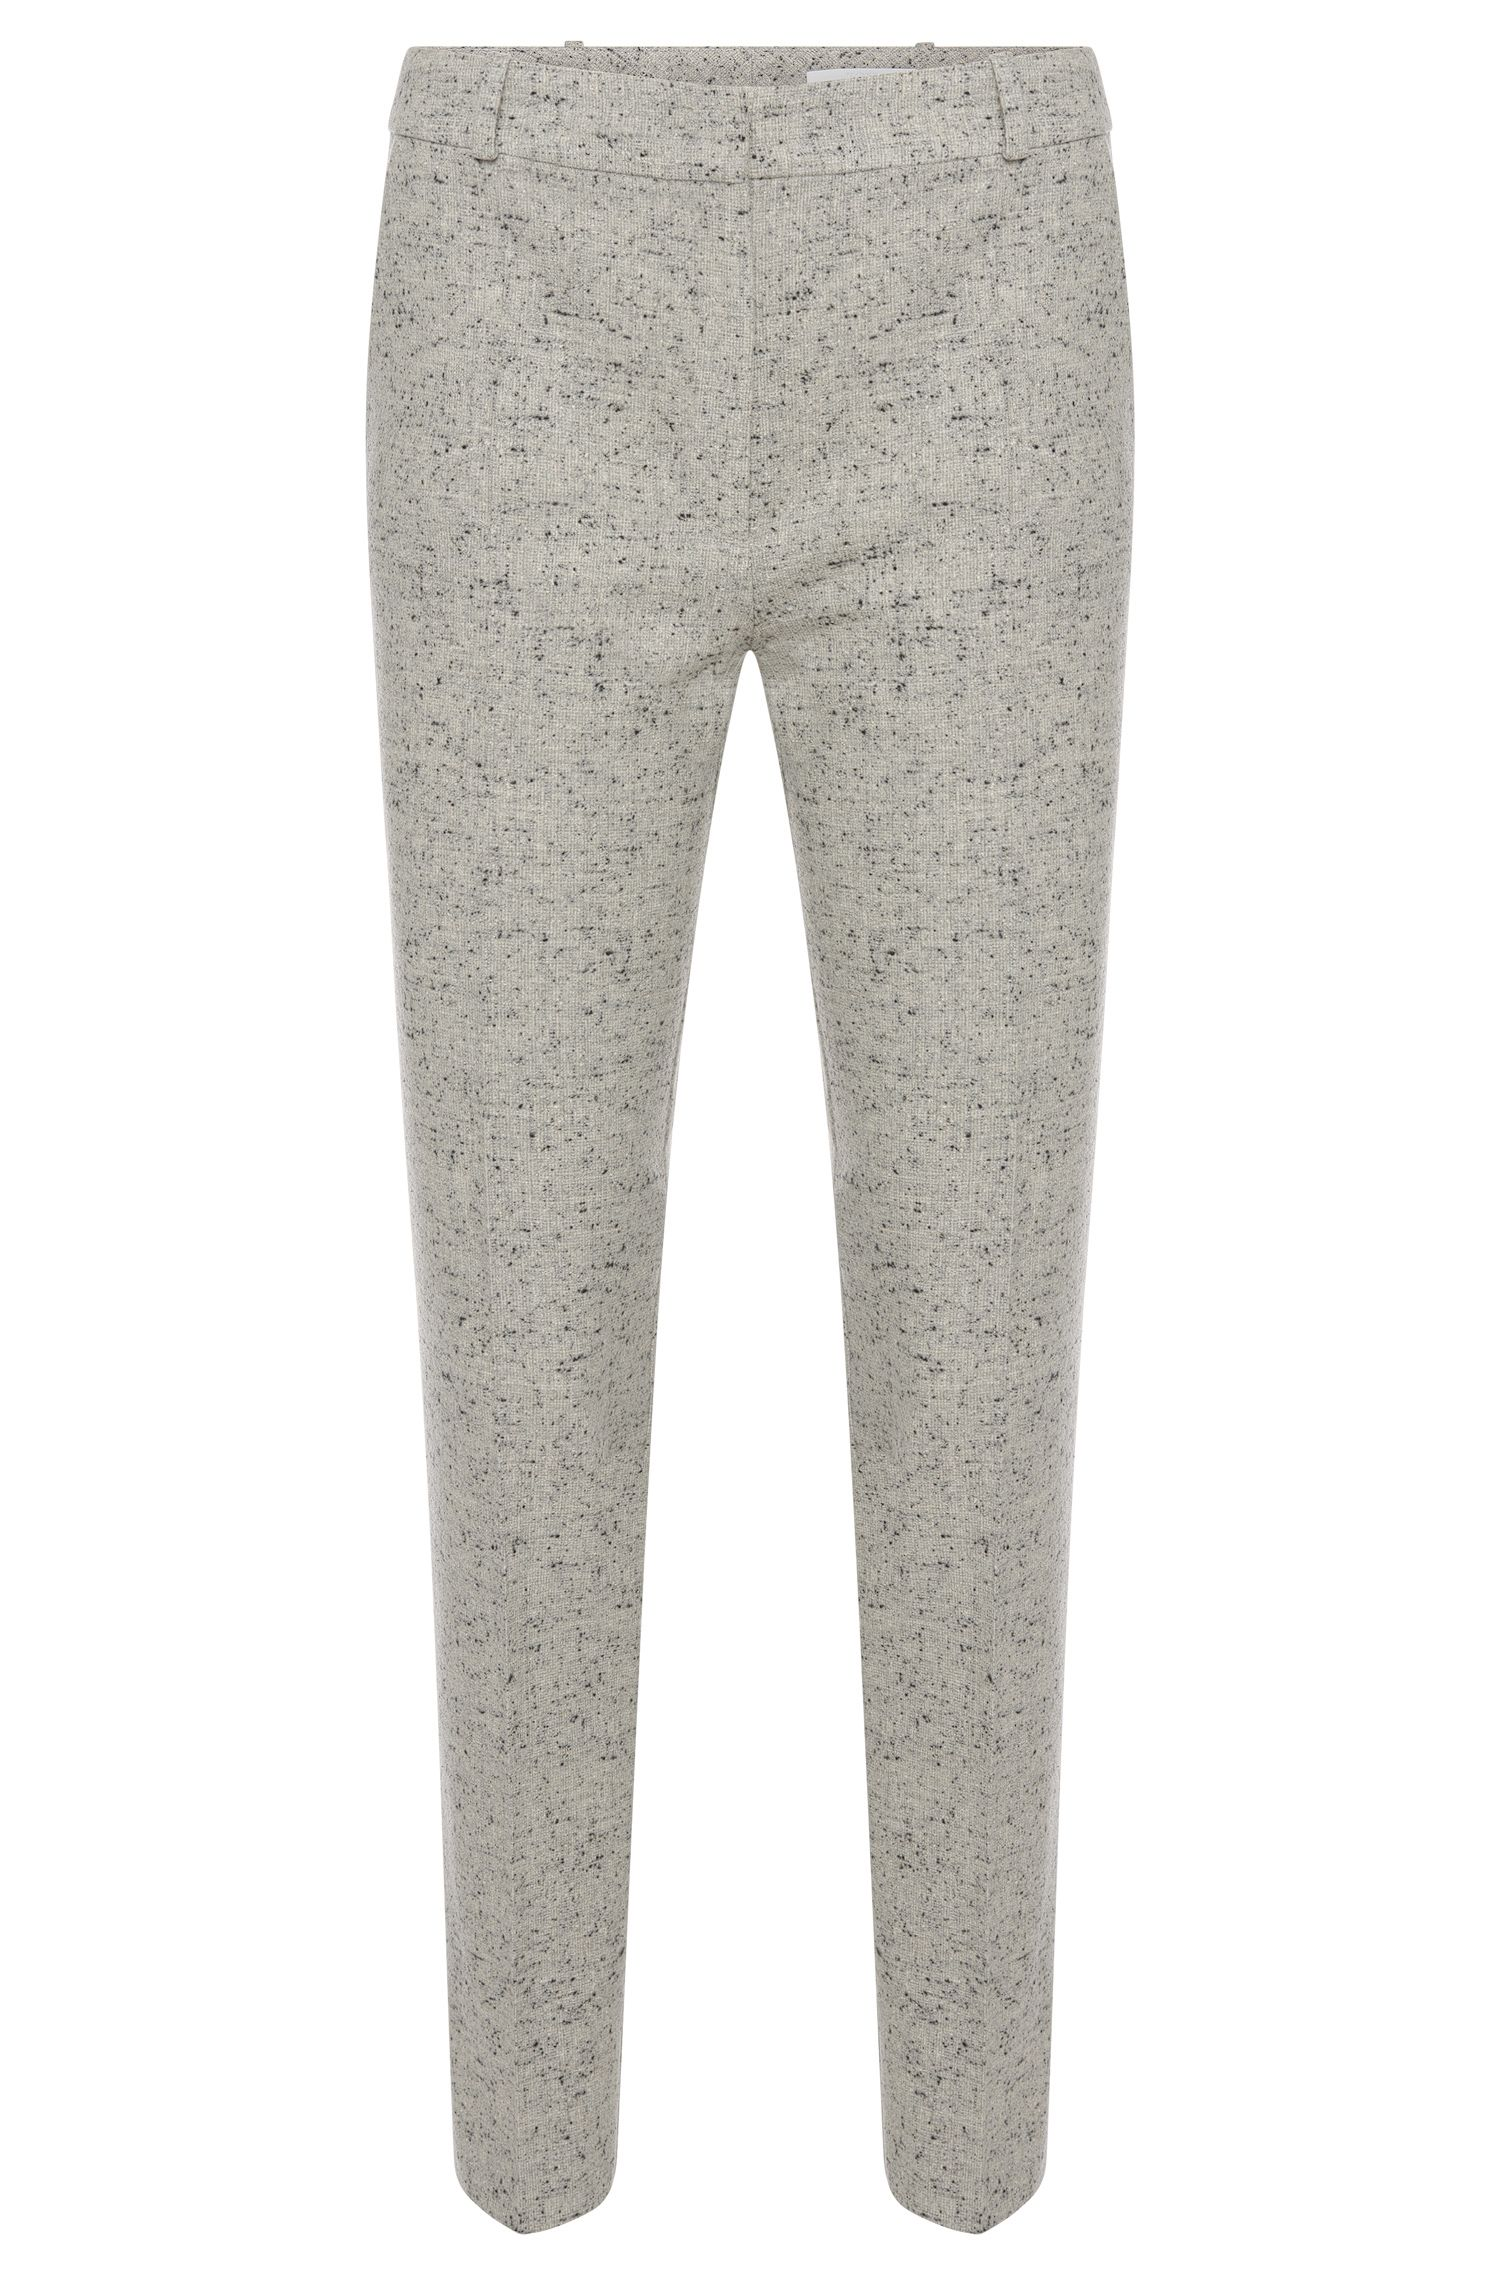 Regular-fit trousers in stretchy fabric blend with slub yarn: 'Acnes8'